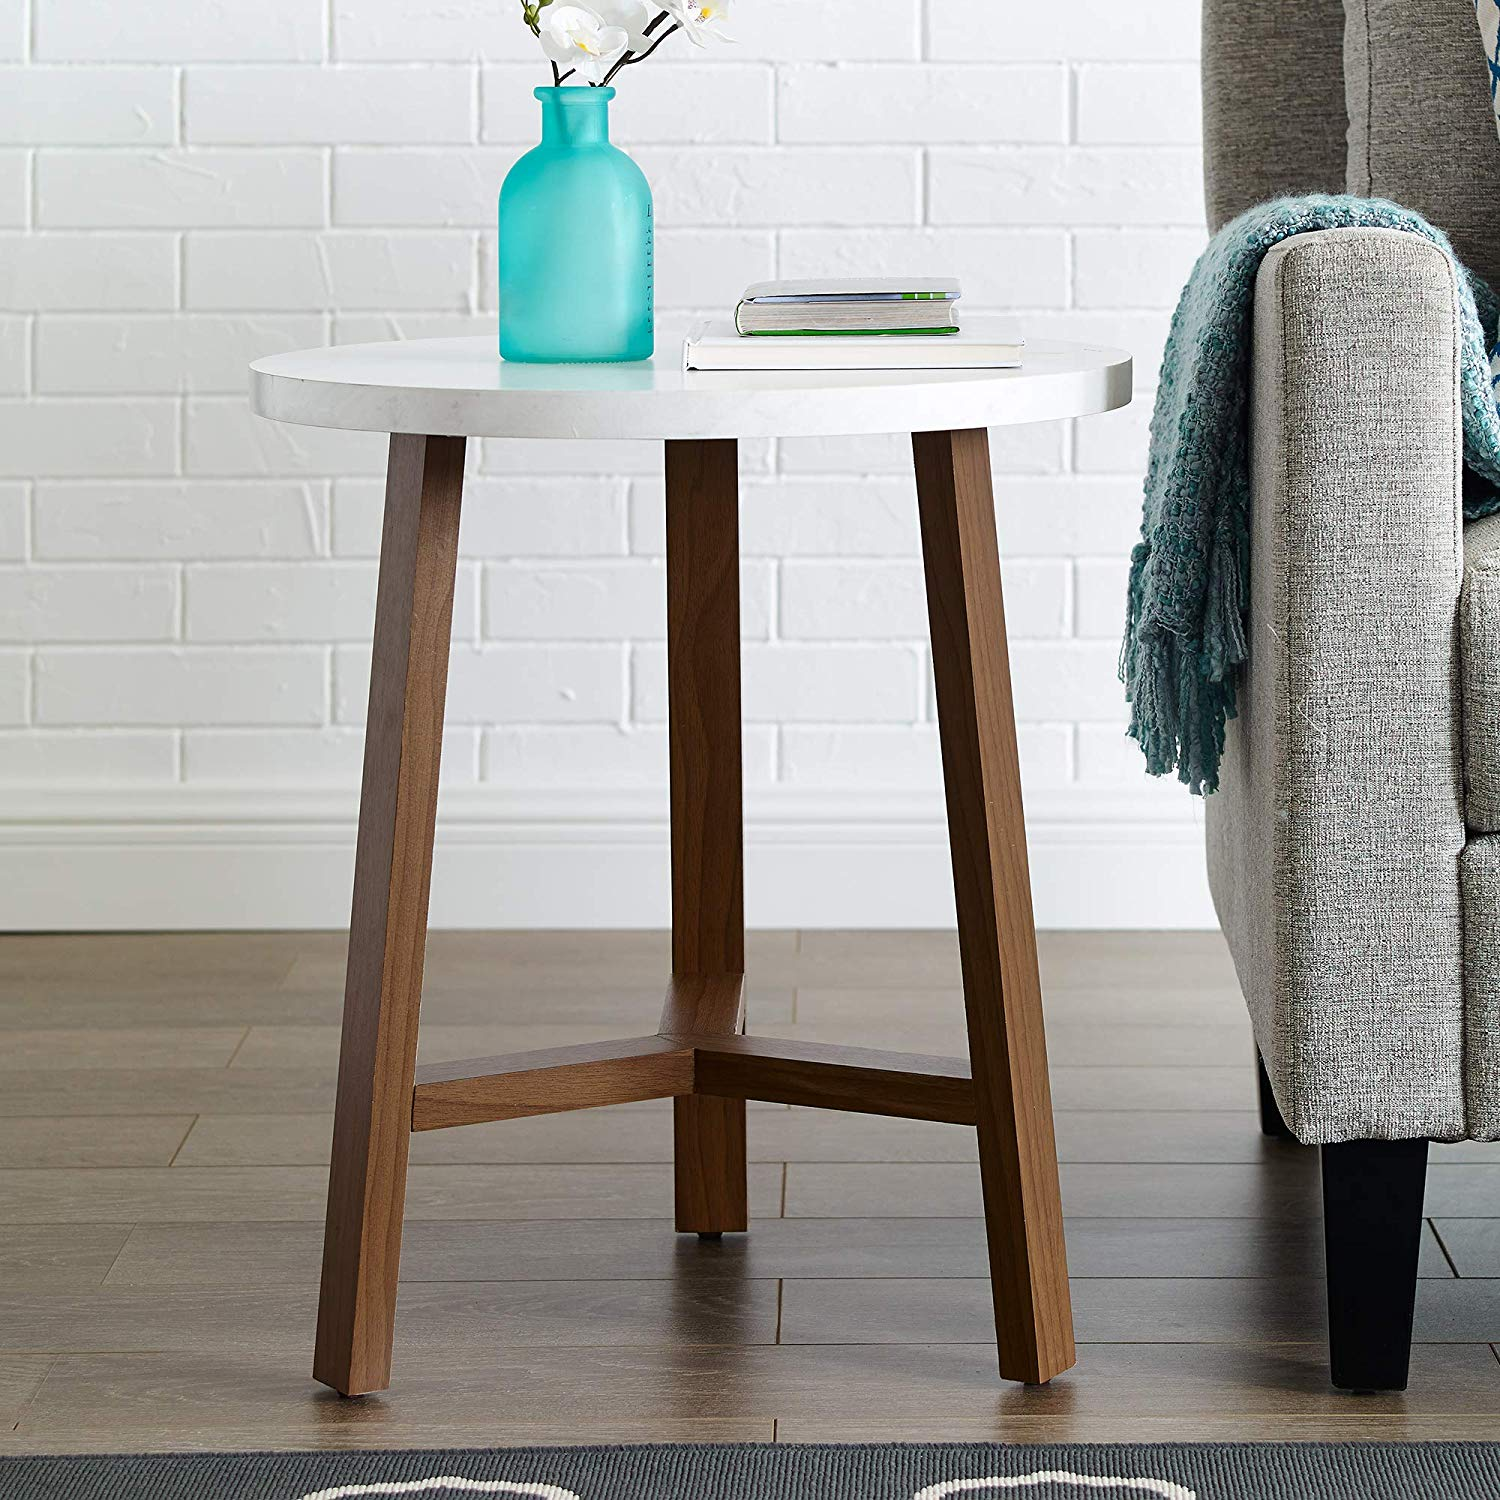 furniture side table white marble and round accent with screw legs acorn kitchen dining gresham green metal coffee contemporary teal home decor black wood patio tables diy desk